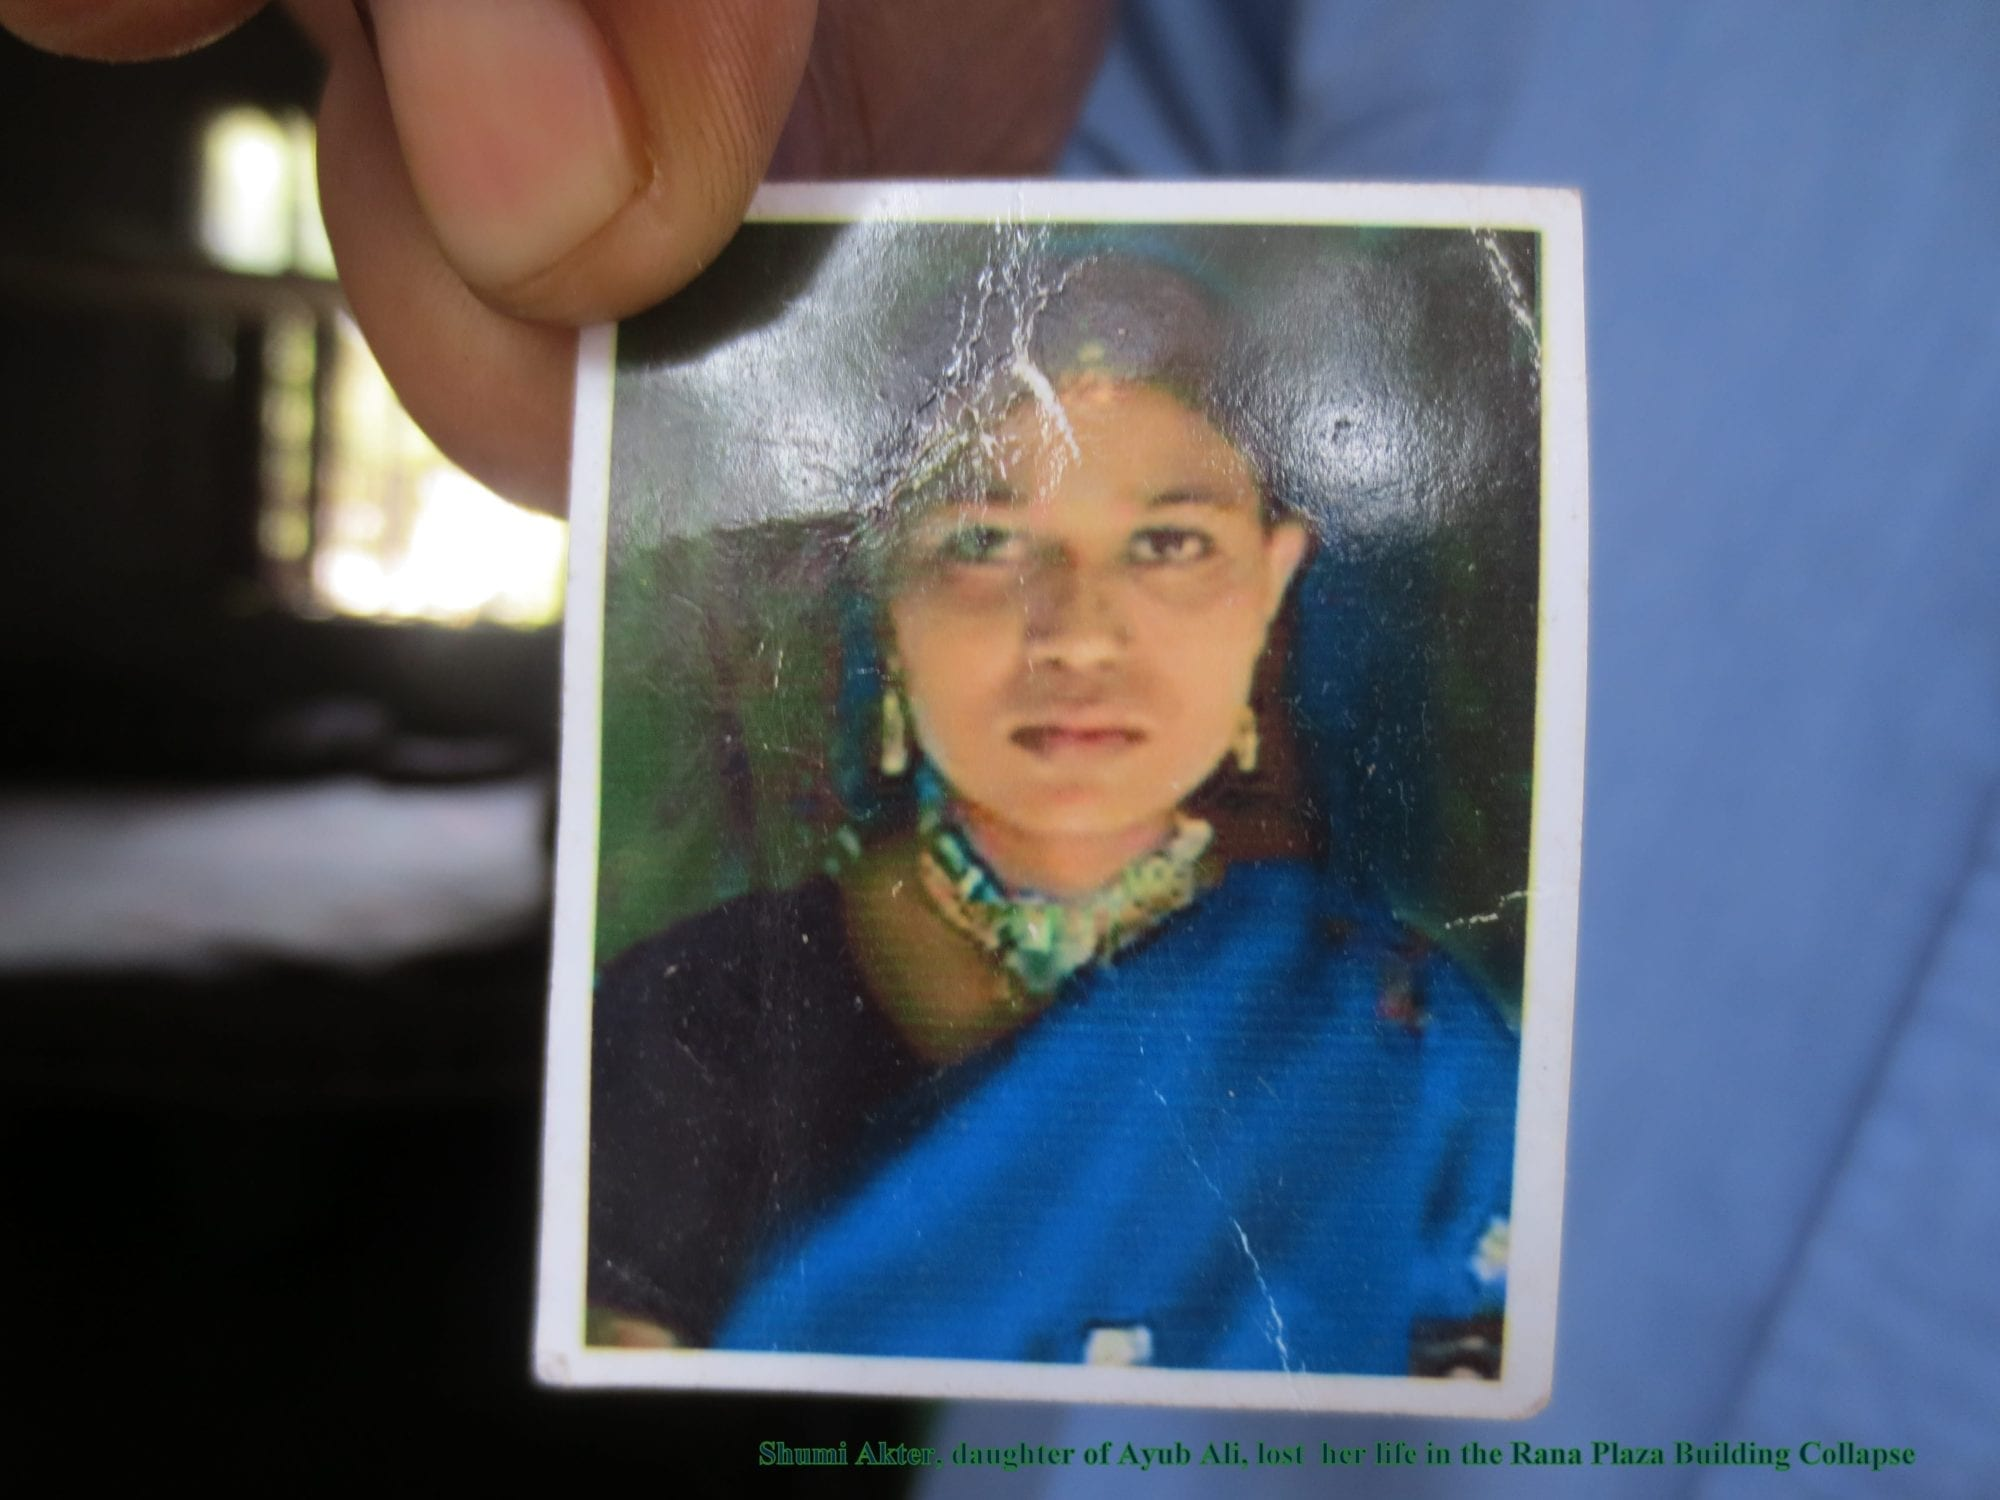 Rana Plaza, 1 Year Later: 'I Cannot Find the Happiness of Life'